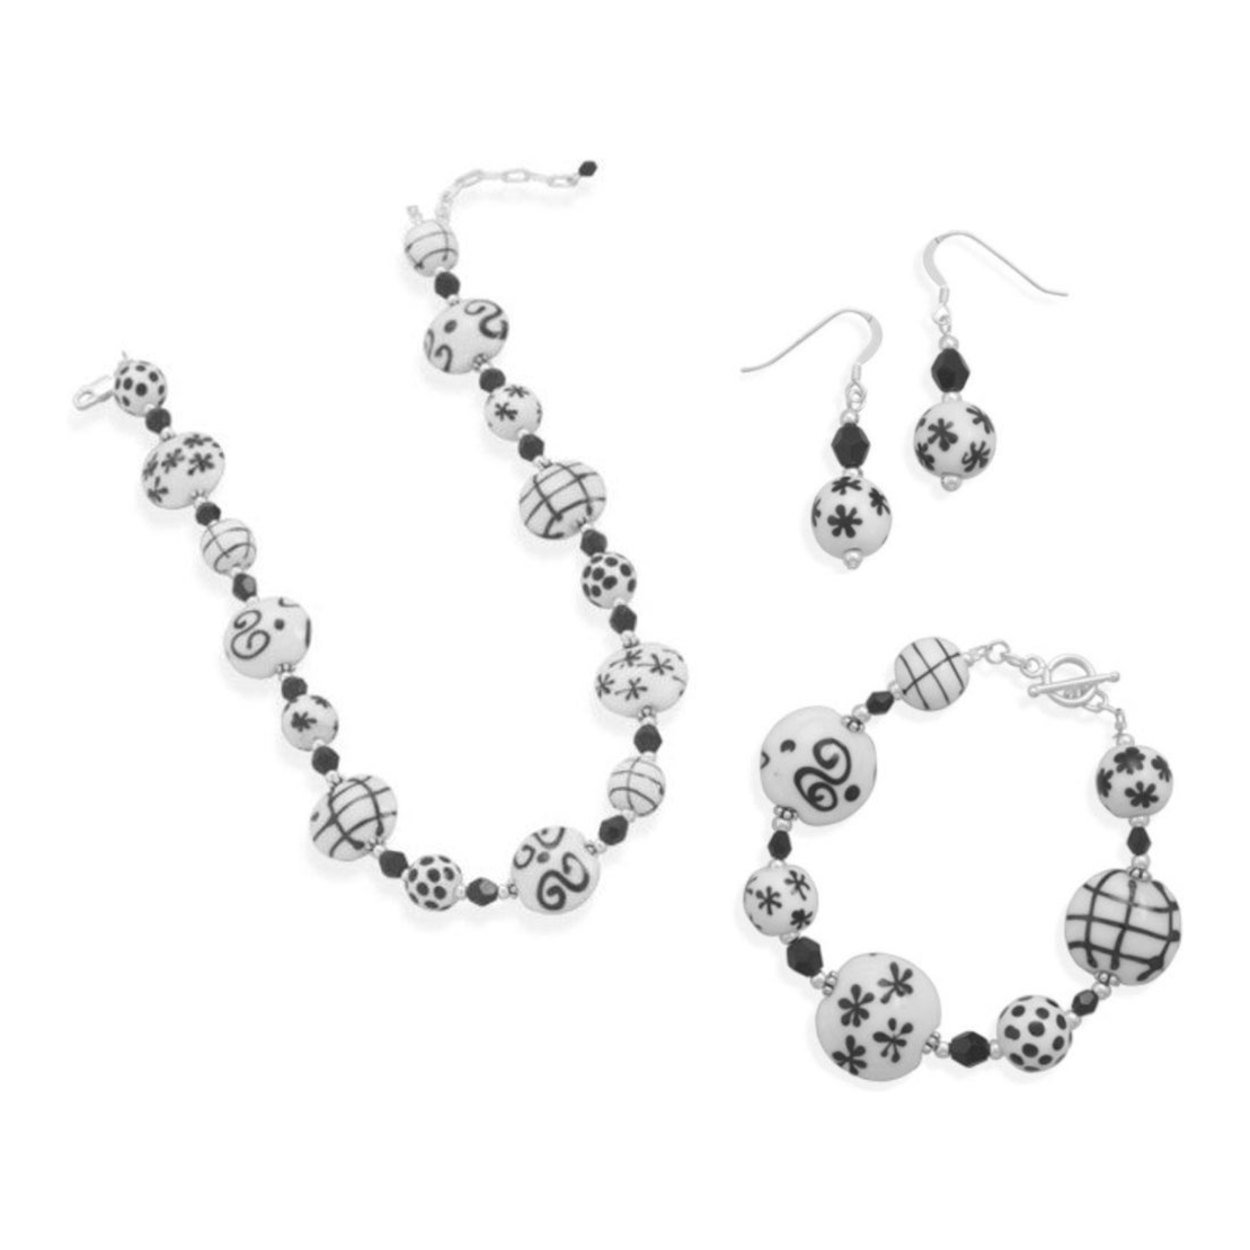 'Perle A Lume' Black and White Venetian Murano Glass Necklace, Bracelet Set With Drop Earrings